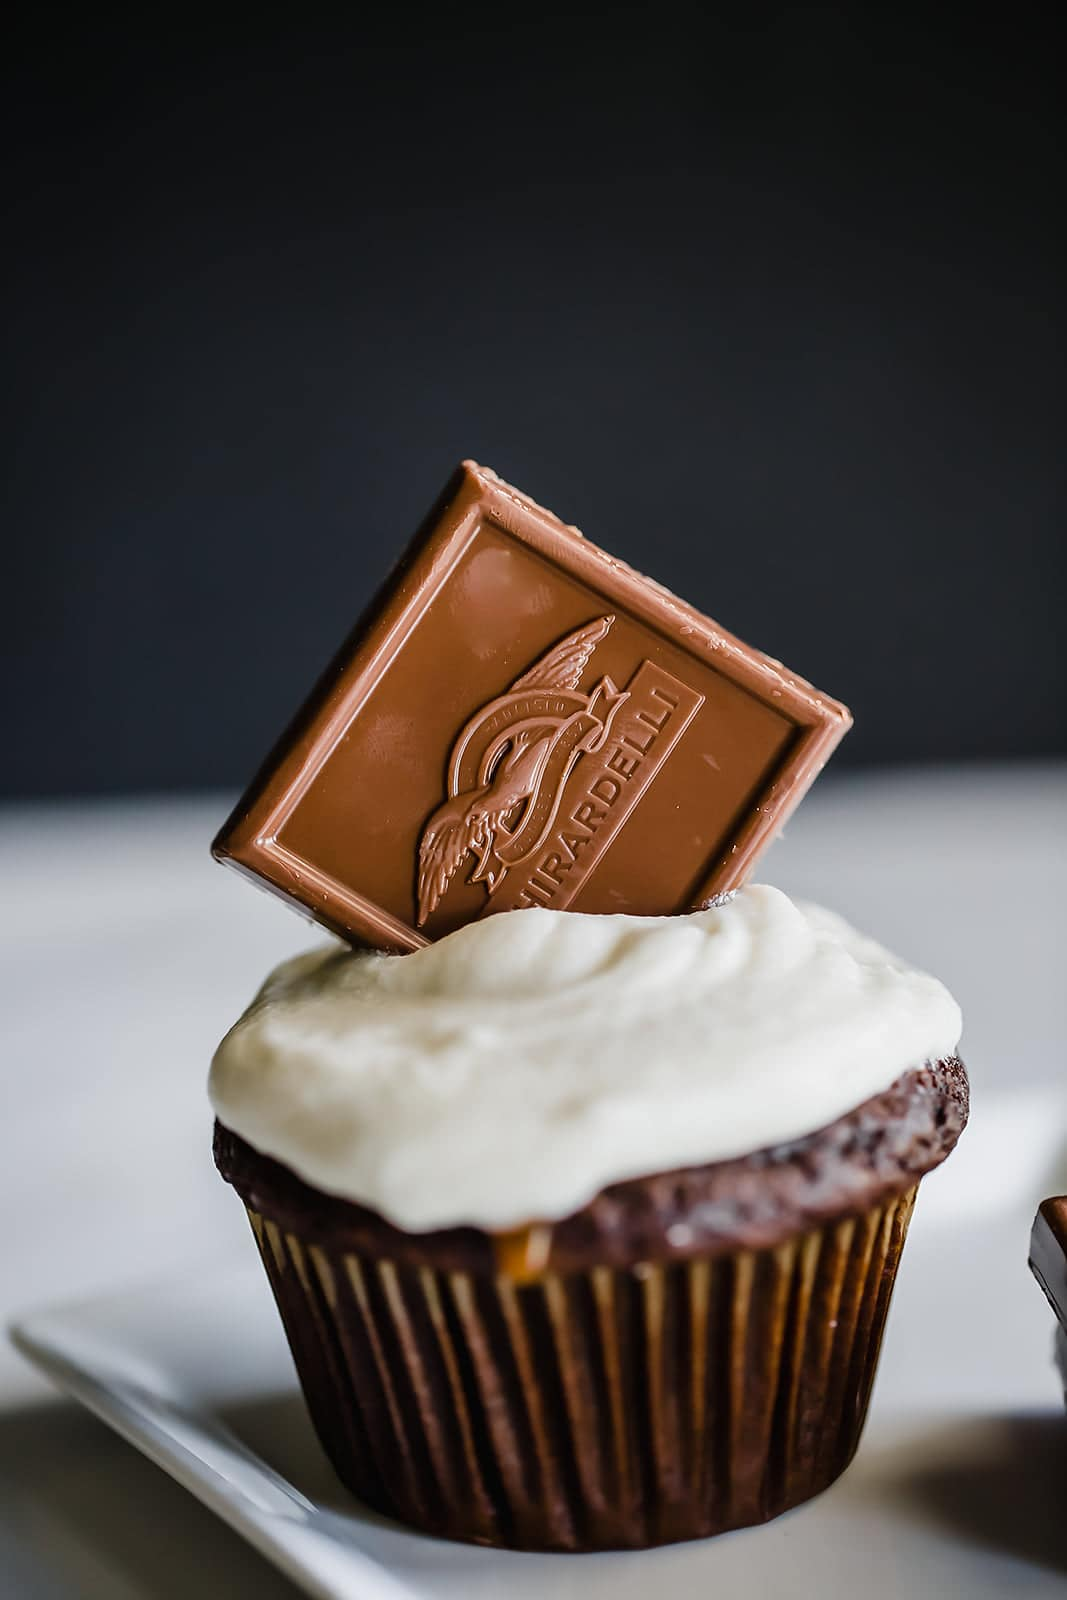 Caramel Stuffed Chocolate Cupcakes feature a super moist and tender chocolate cupcake filled with luscious caramel sauce and topped with vanilla buttercream.